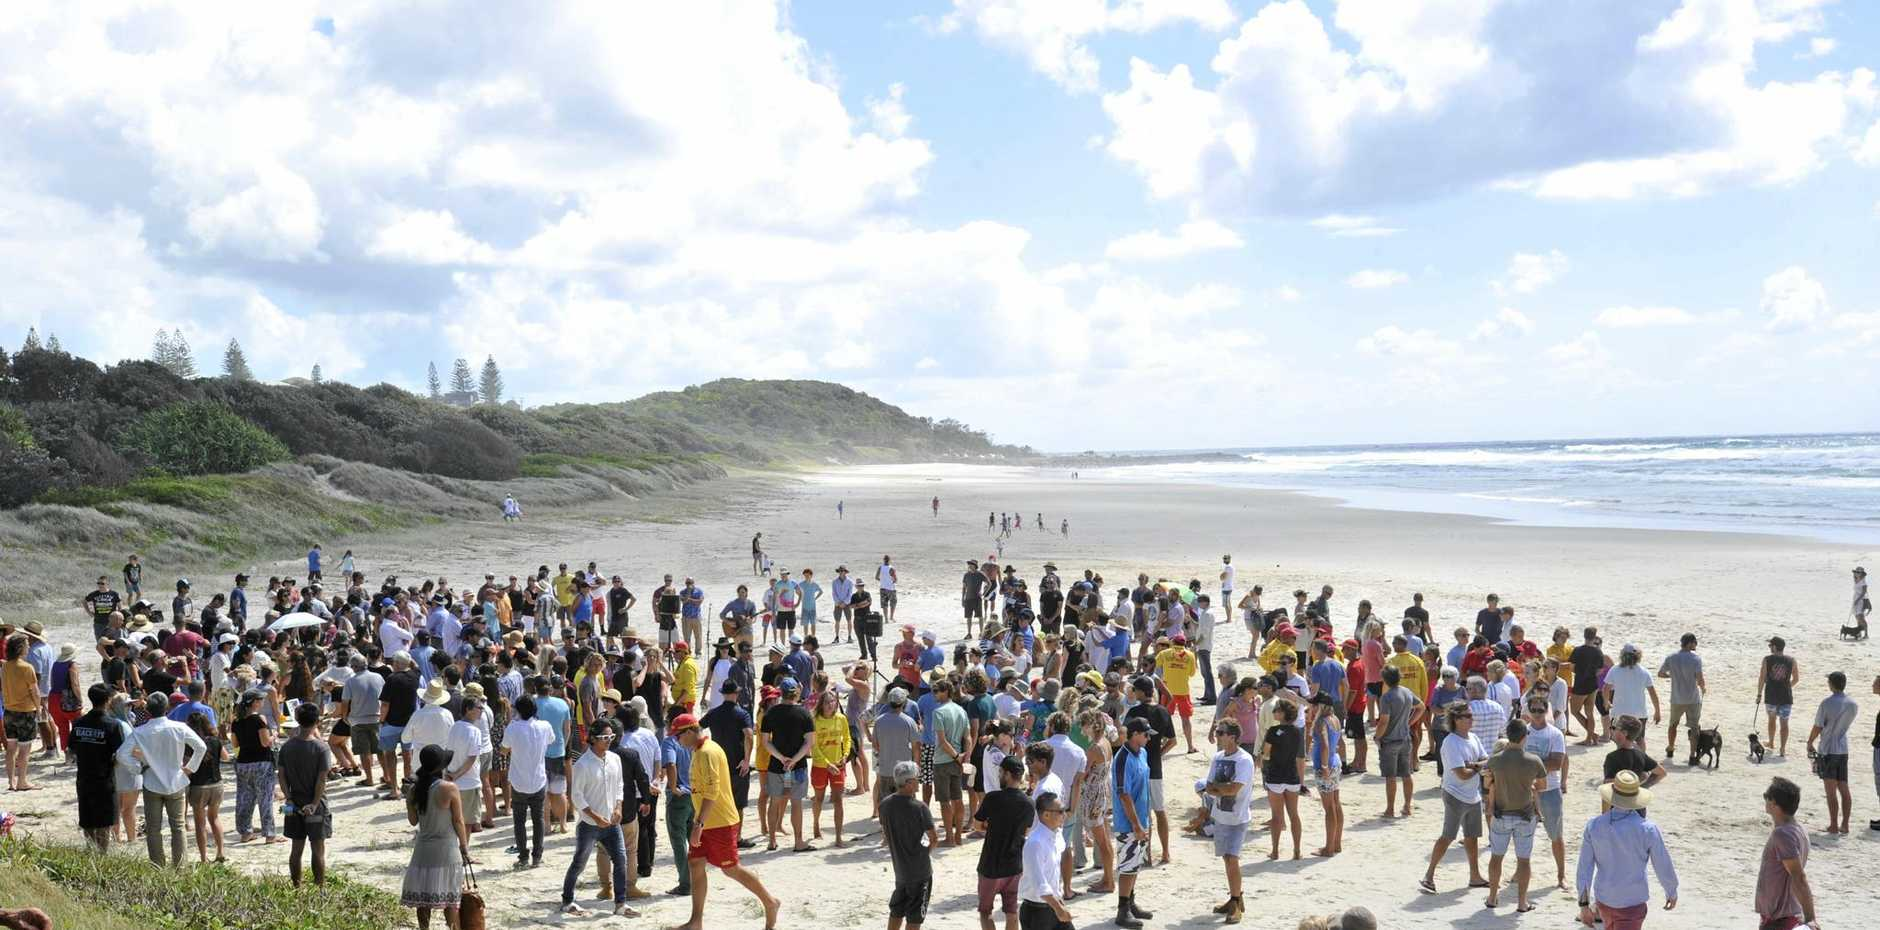 GRIEF AND TRAUMA: There was a large turnout at Shelly Beach for the memorial service of local surfer Tadashi Nakahara, who died in a shark attack at the popular surfing spot on February 9, 2015.